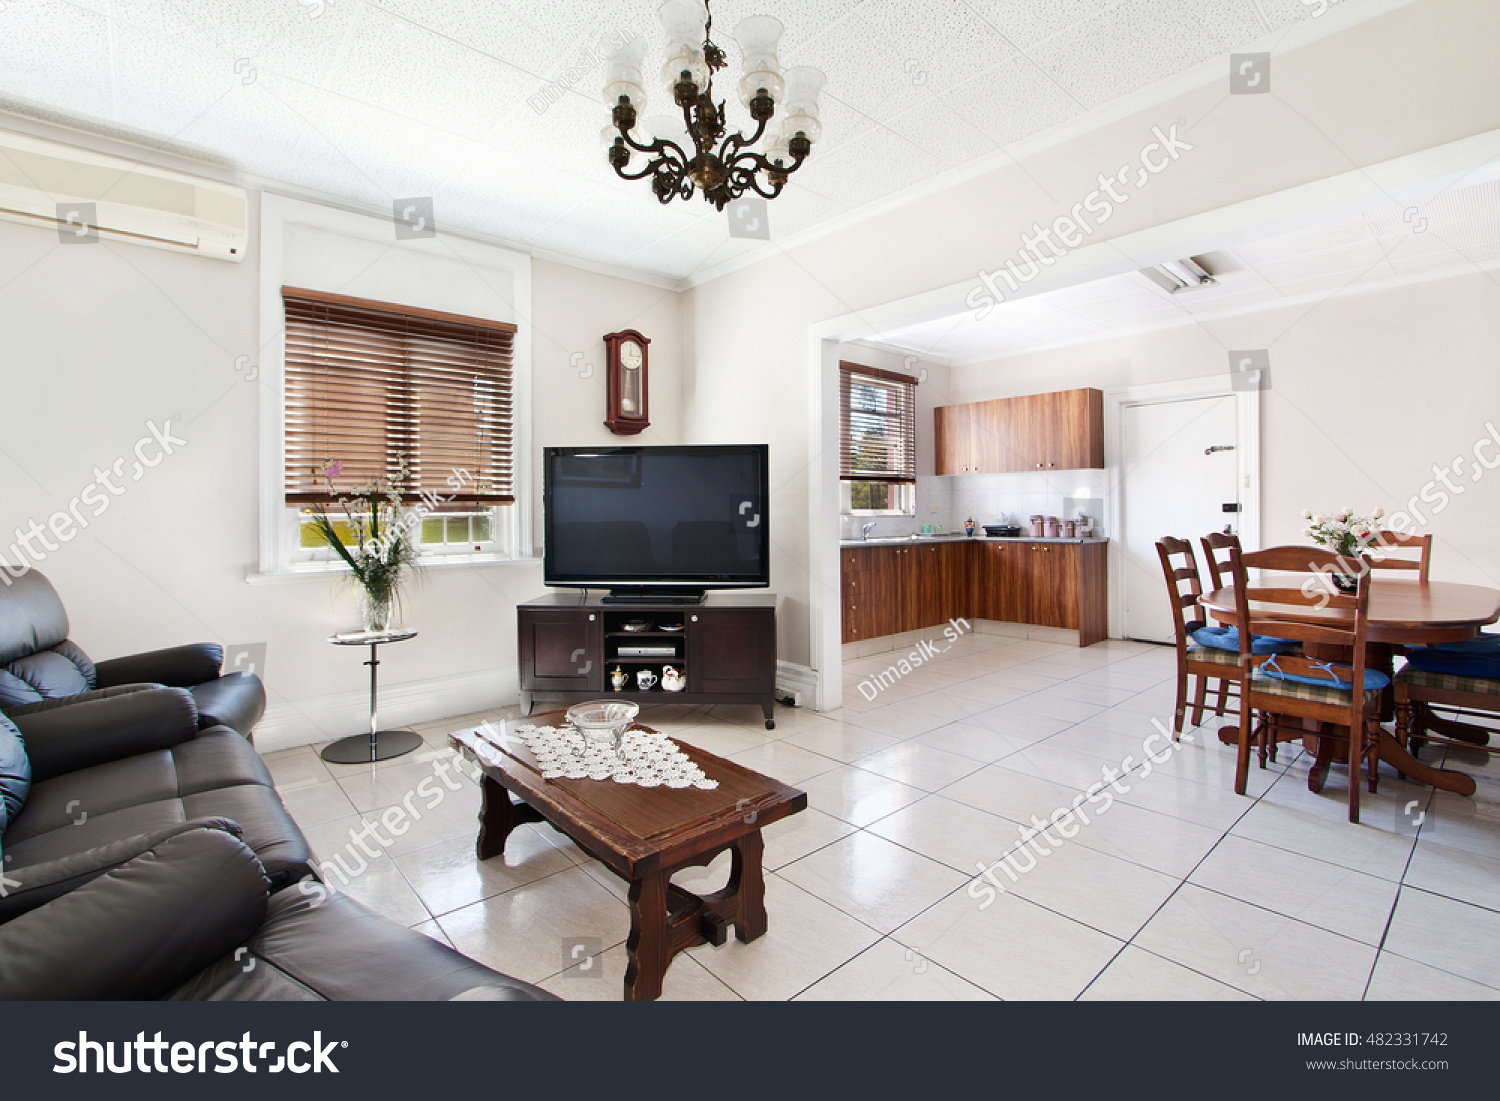 Beautiful Living Room Stock Photo (Download Now) 482331742 ...